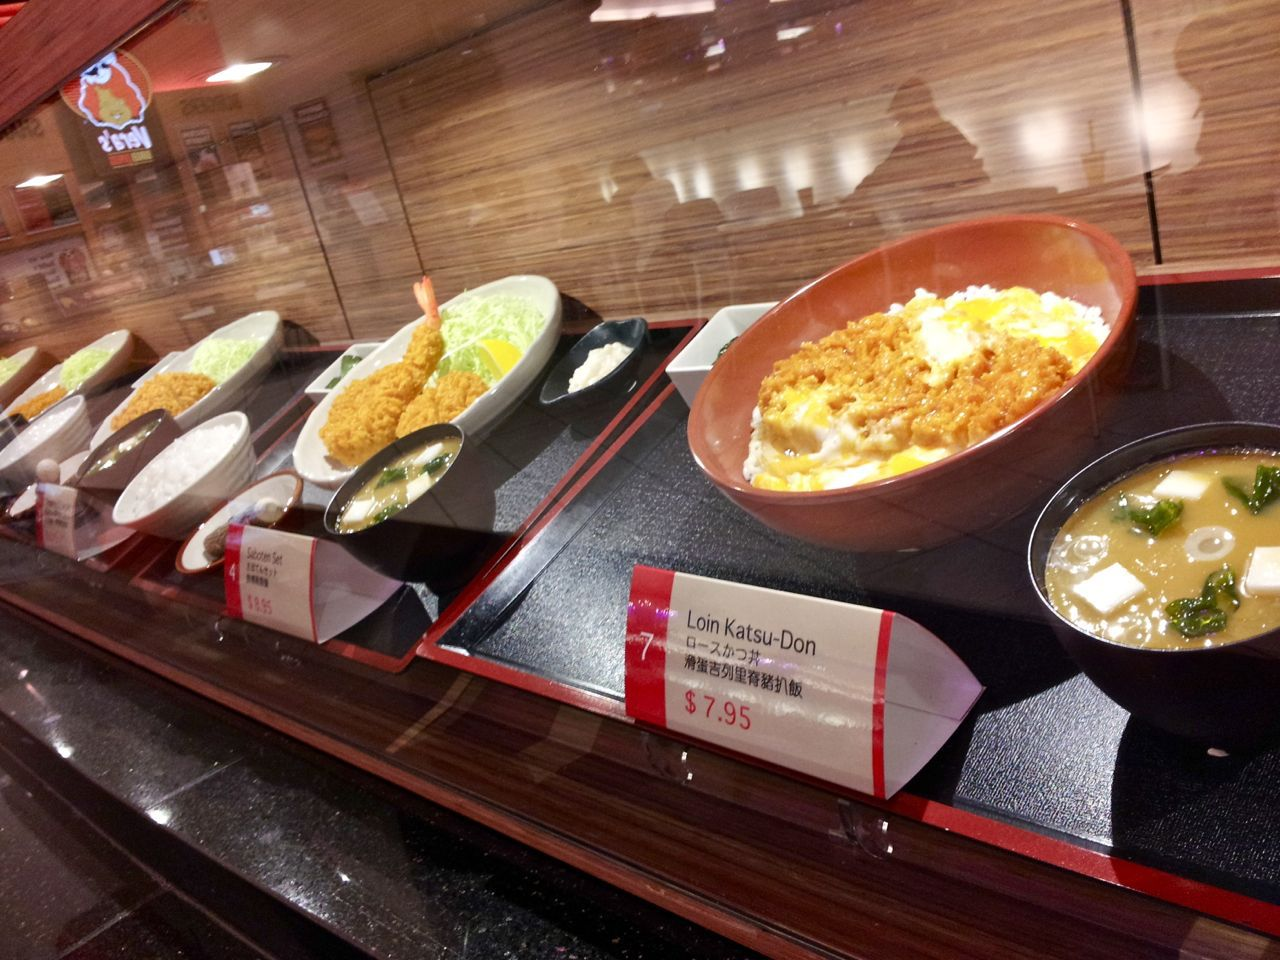 meal examples at Saboten